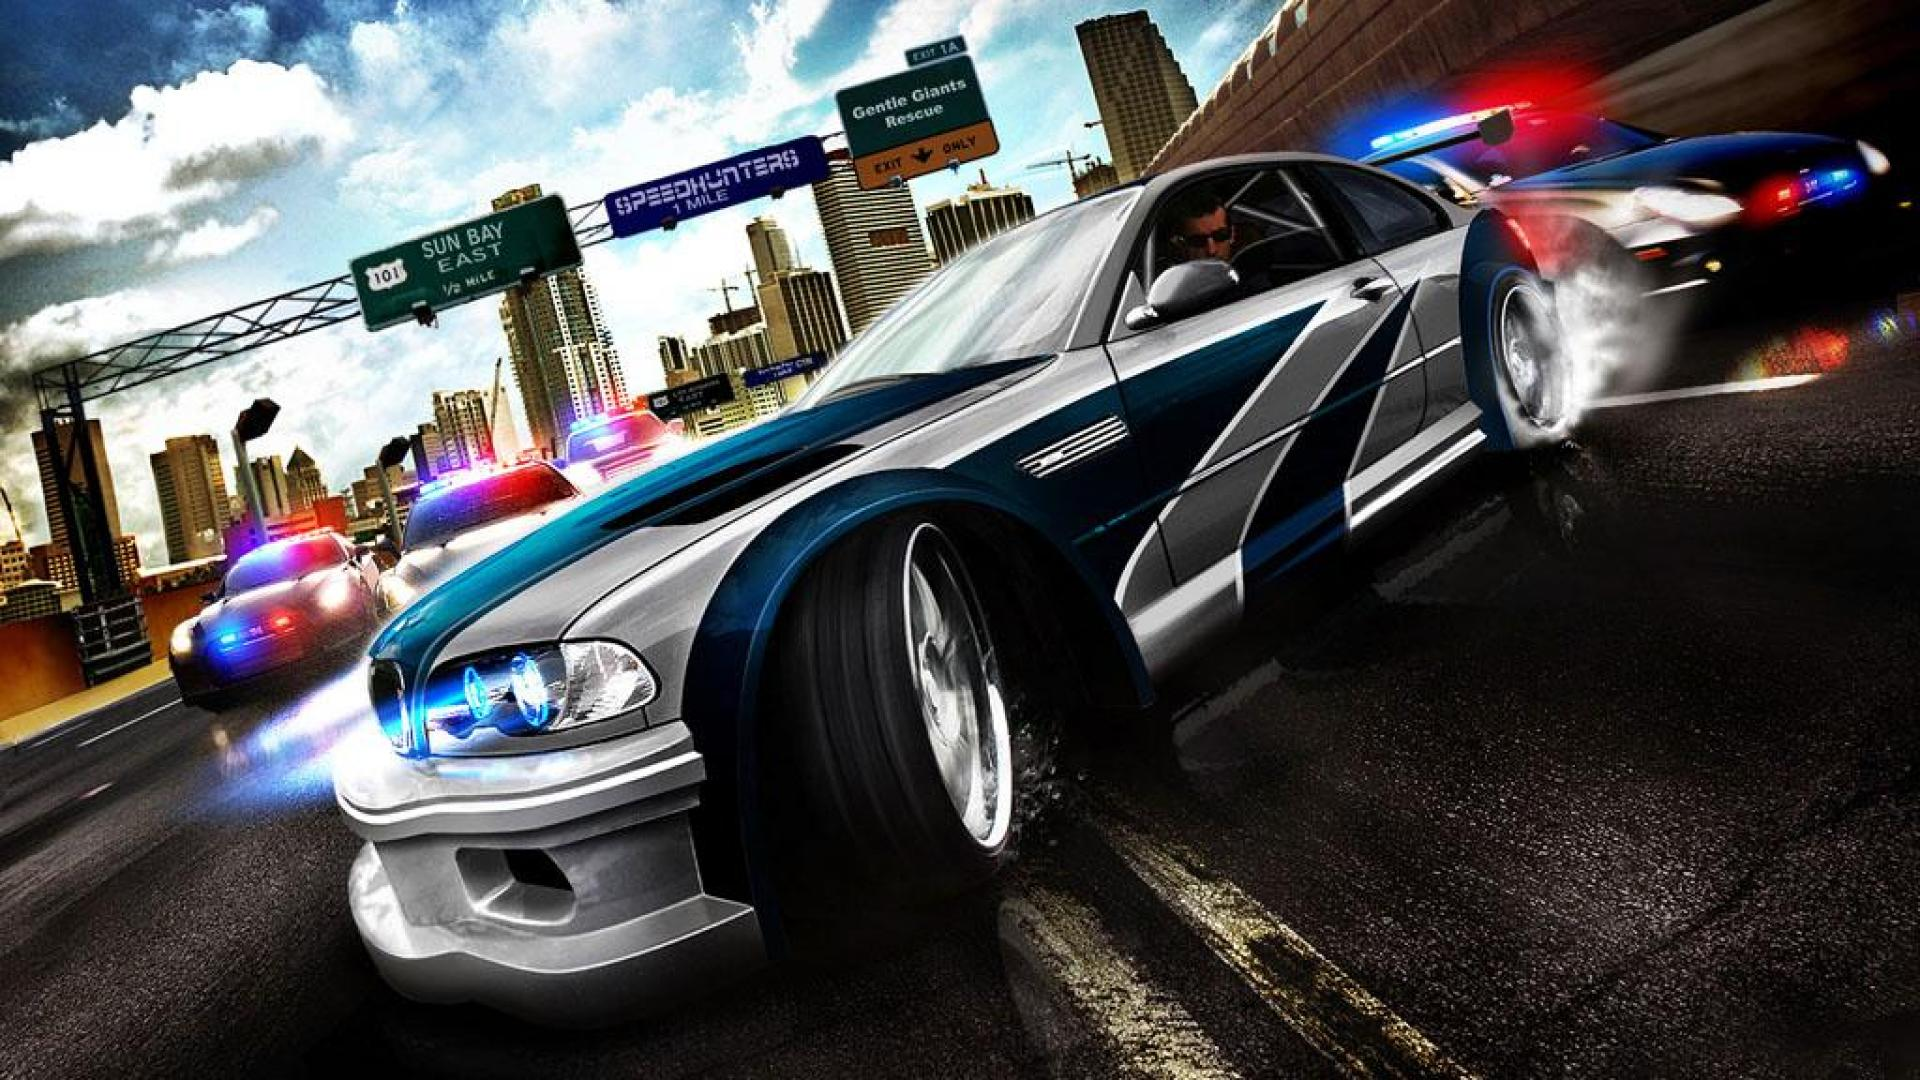 10 Most Popular Need For Speed Wallpaper Full Hd 1080p For: Wallpaper, High Definition